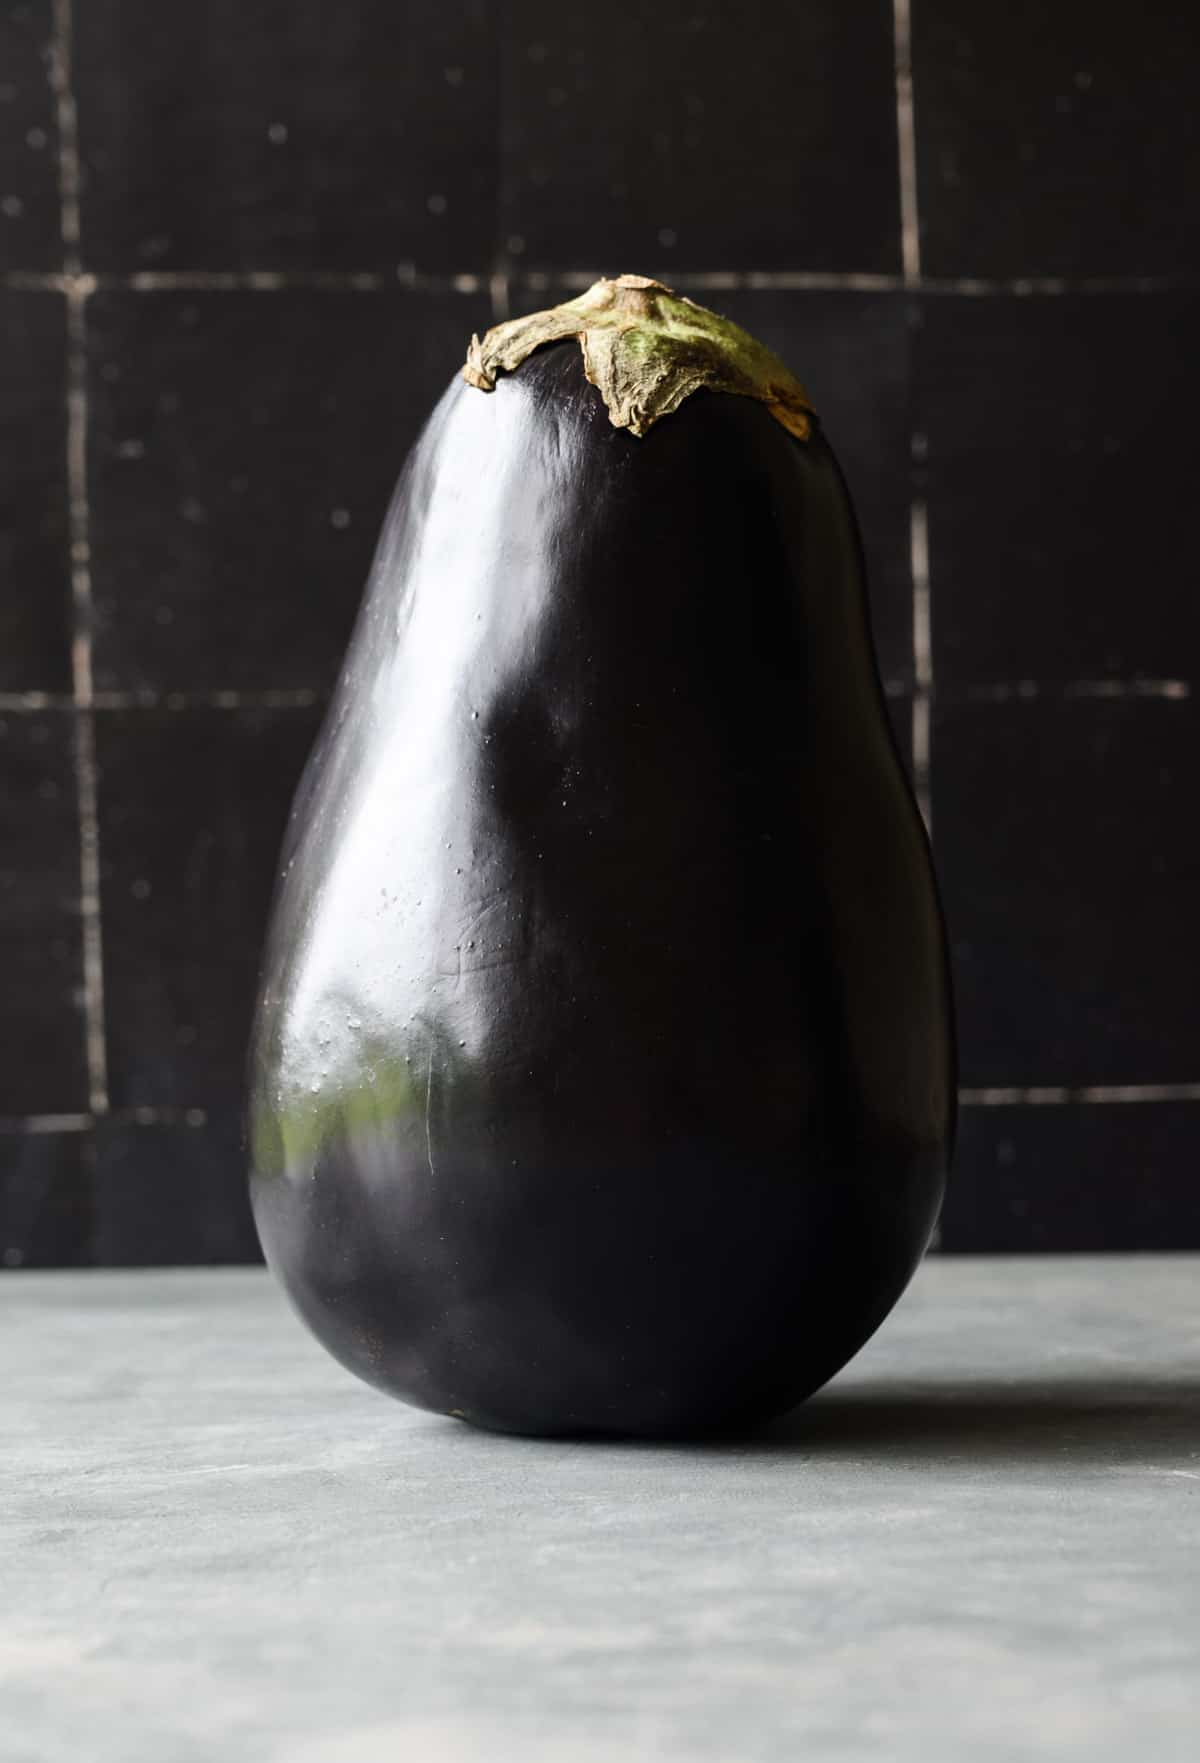 whole eggplant standing on a light gray floor with a black tile background.